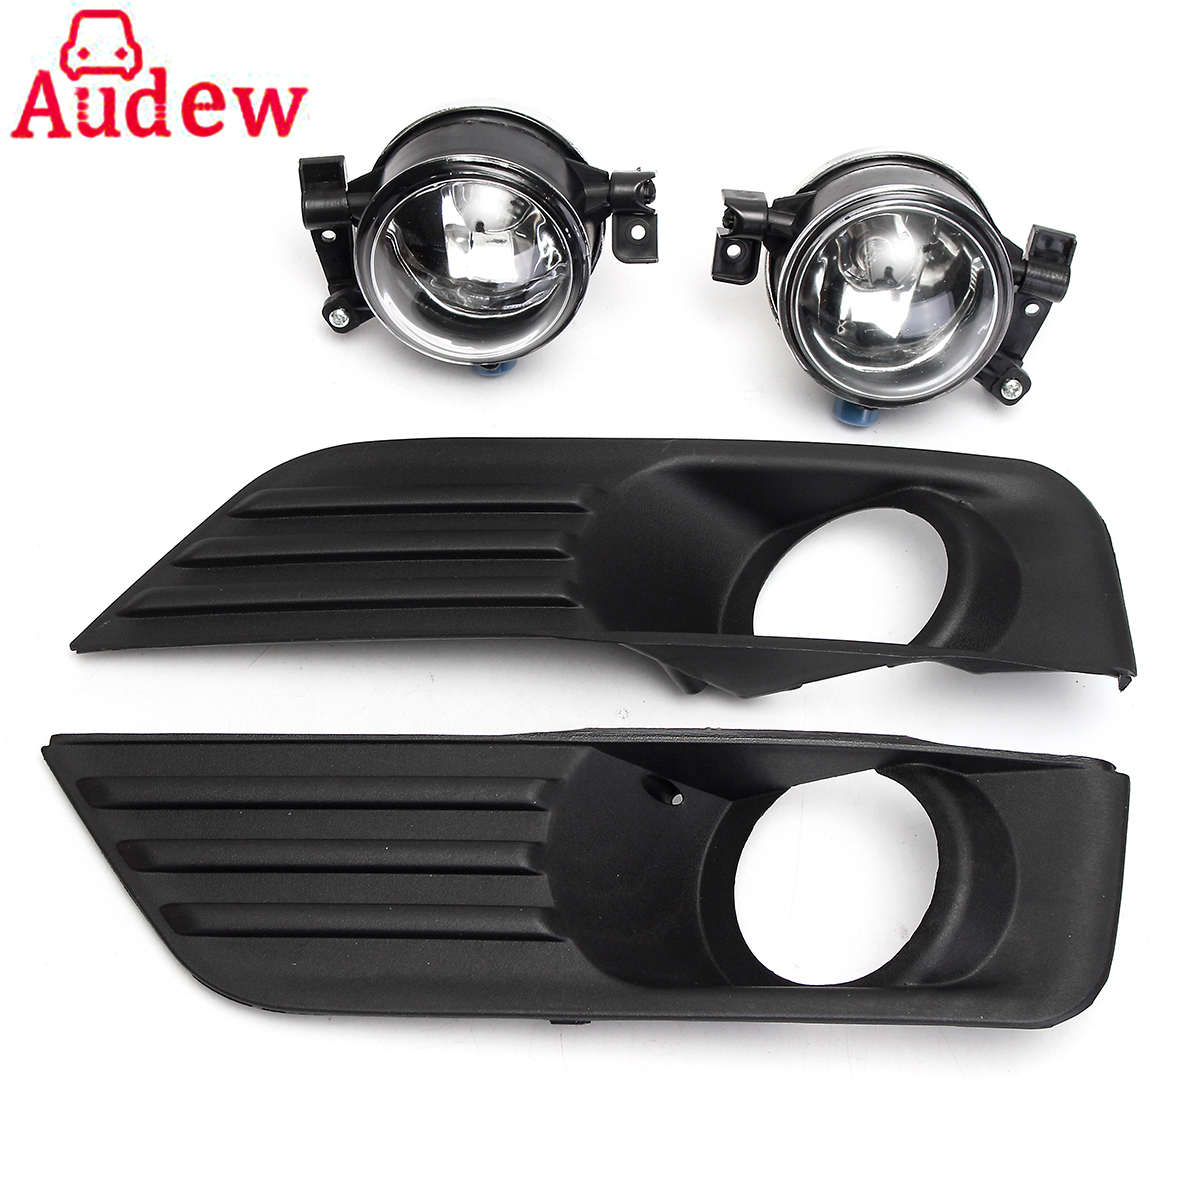 2Pcs Car Bumper Front  Fog Lights Lamp Day Running Light Cover Grille Kit Set For Ford/Focus 2005-2007 1set front chrome housing clear lens driving bumper fog light lamp grille cover switch line kit for 2007 2009 toyota camry